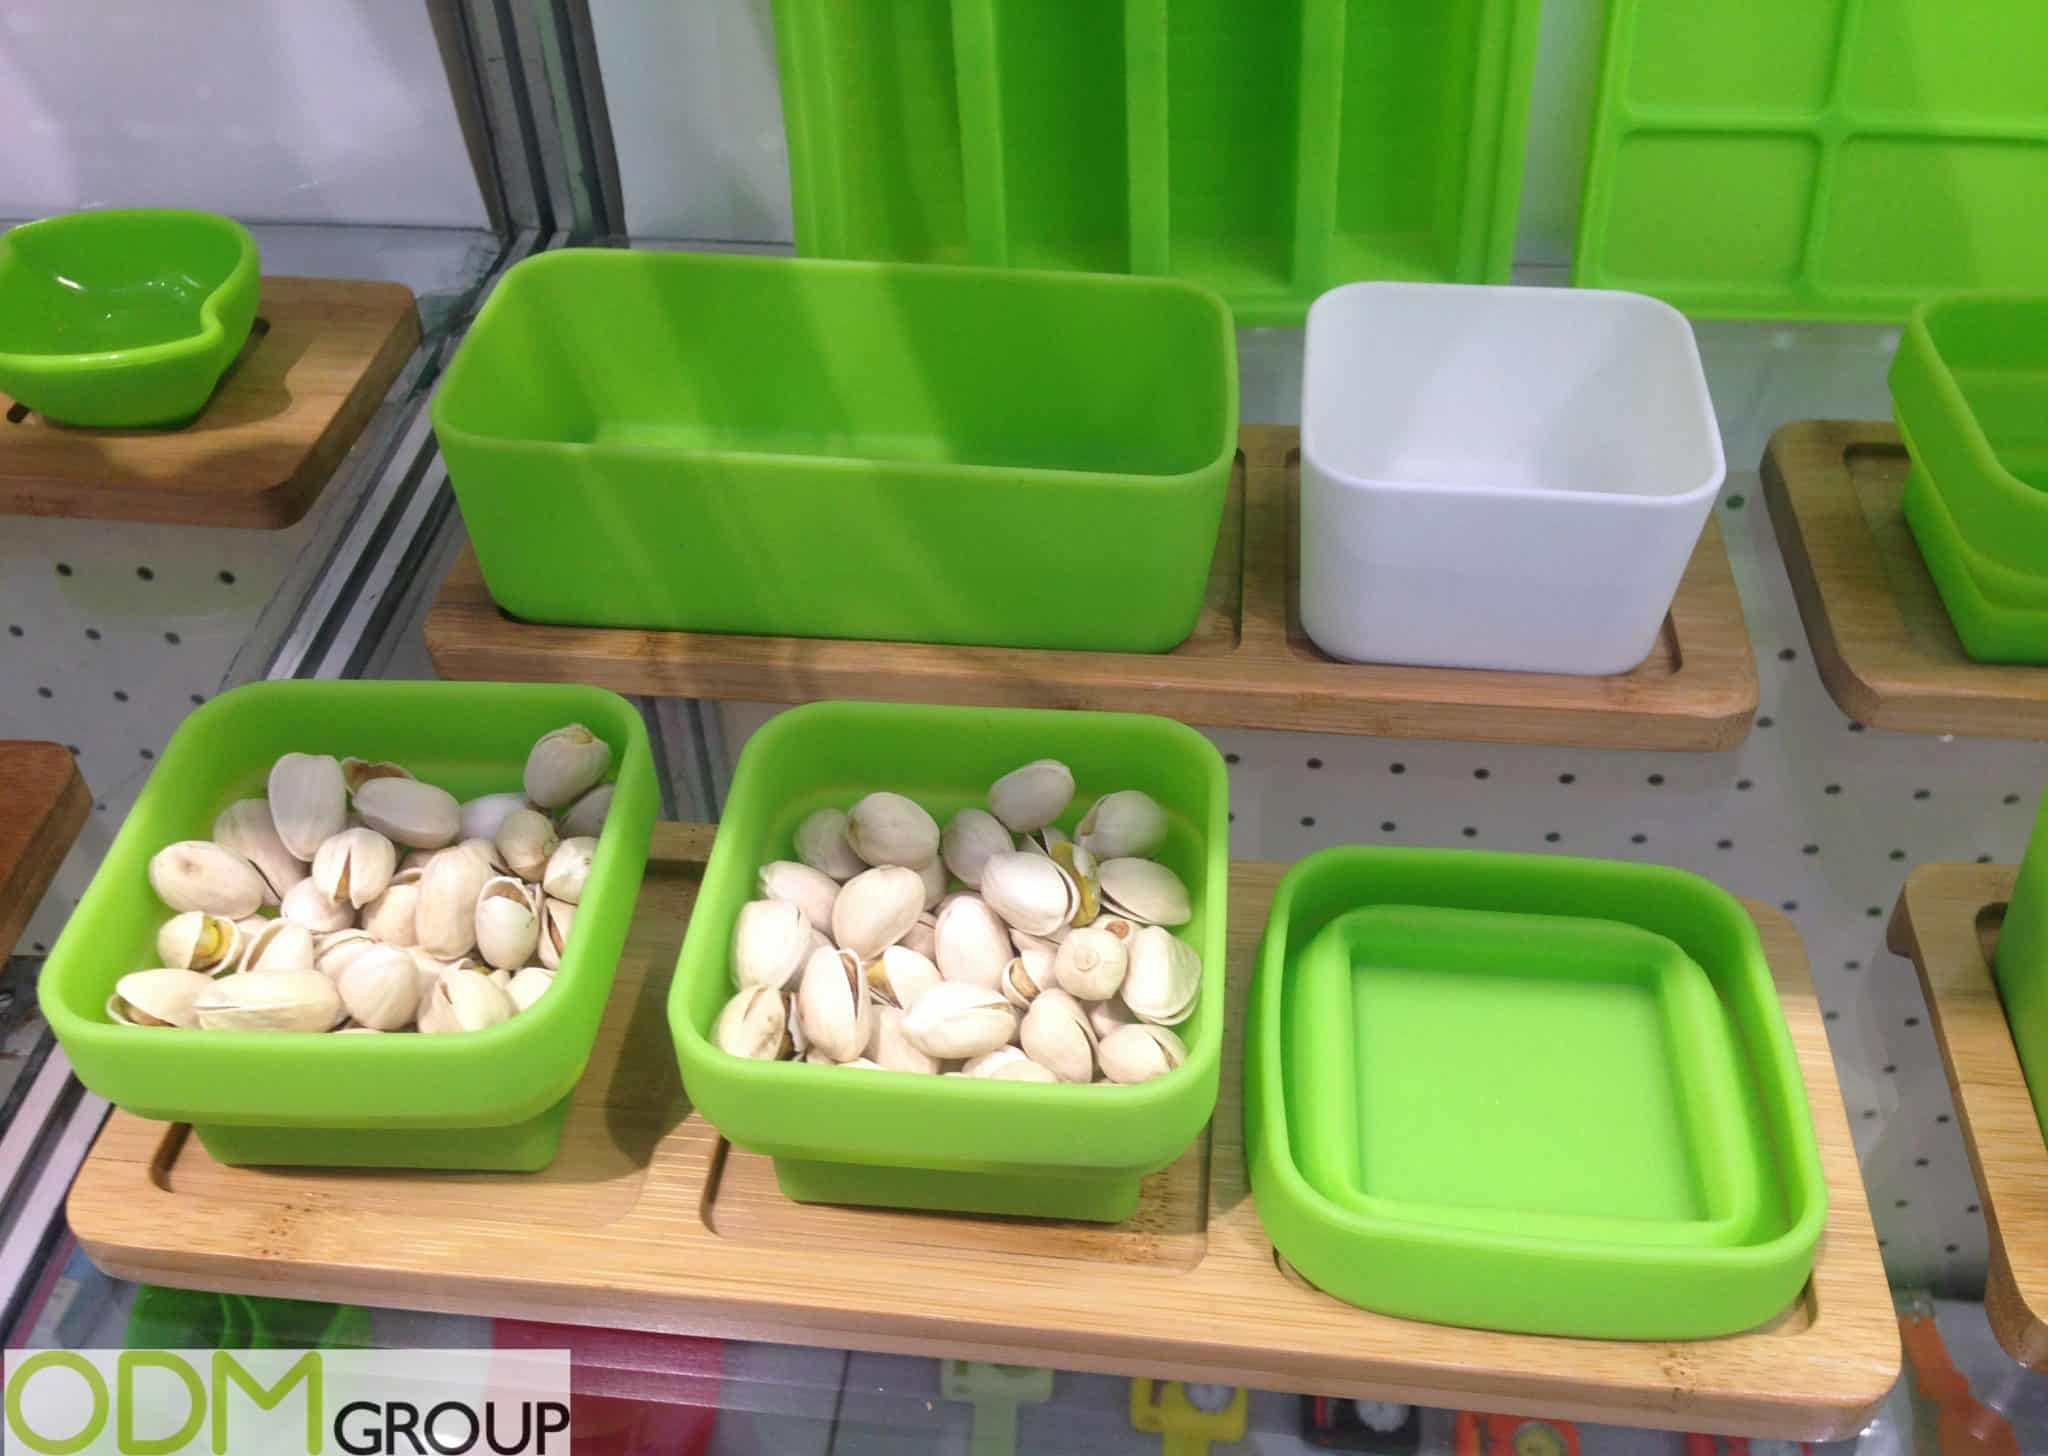 Promotional Kitchen Items - Silicone and Bamboo Serveware Sets